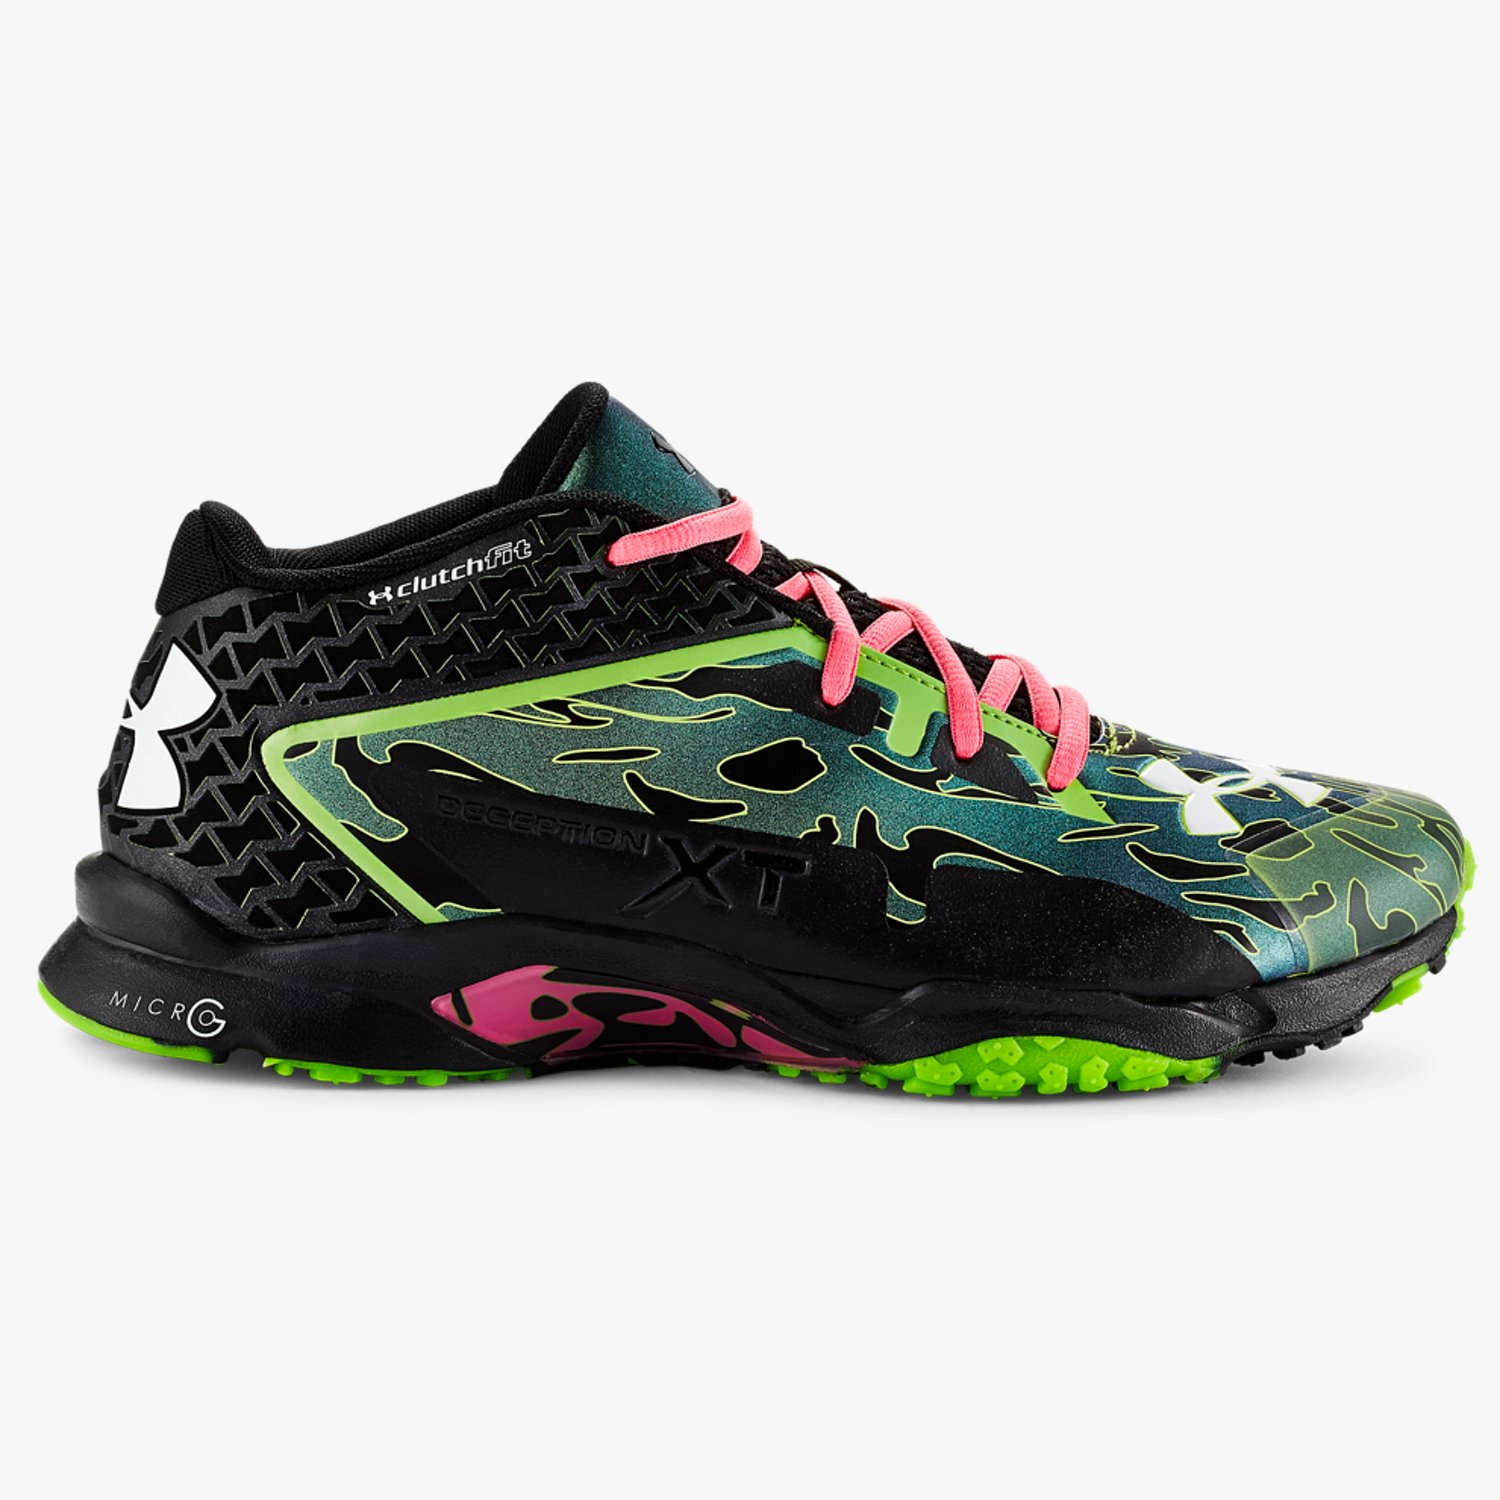 Under Armour UA Micro G Deception XT Training Shoes Black/Hyper Green/White-30